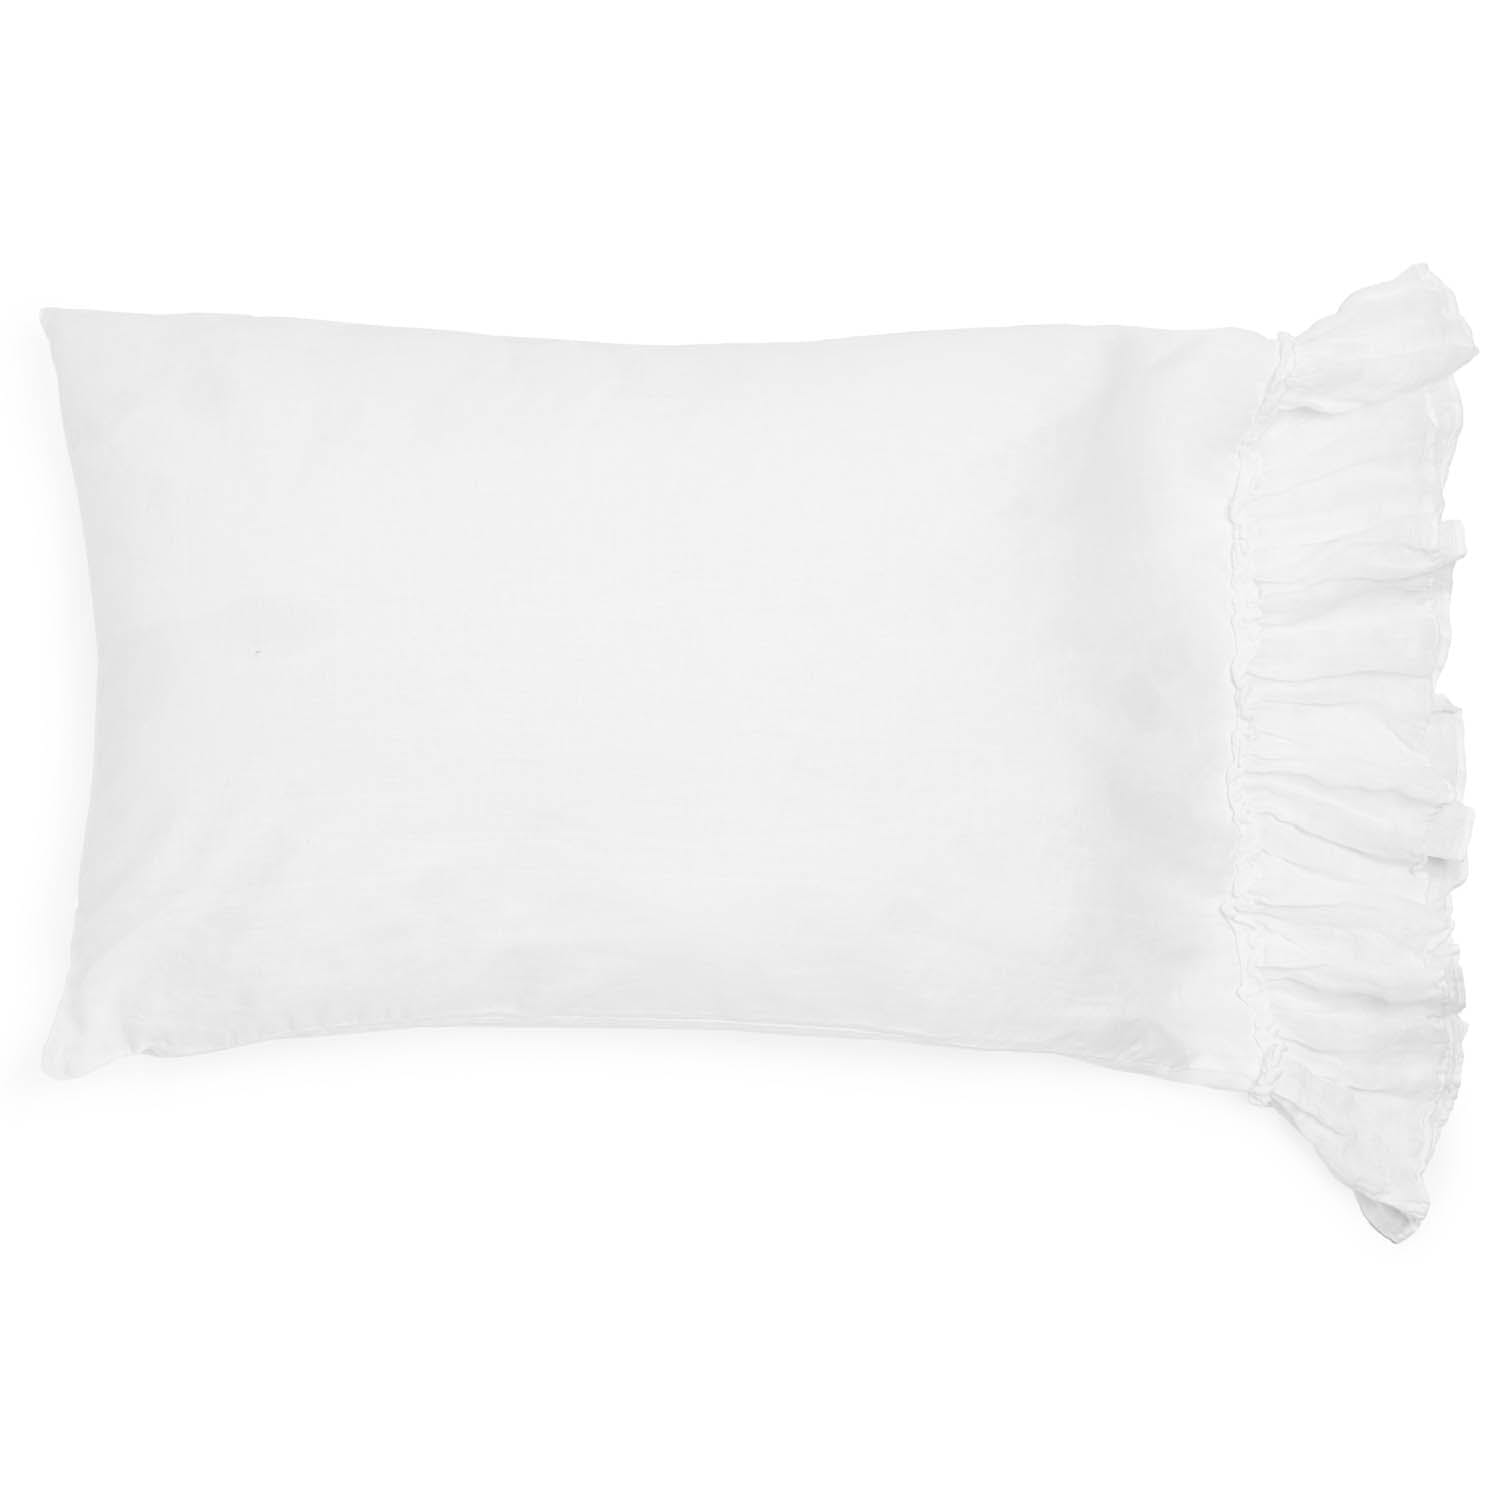 Product Image - Whisper Linen King Pillowcase White